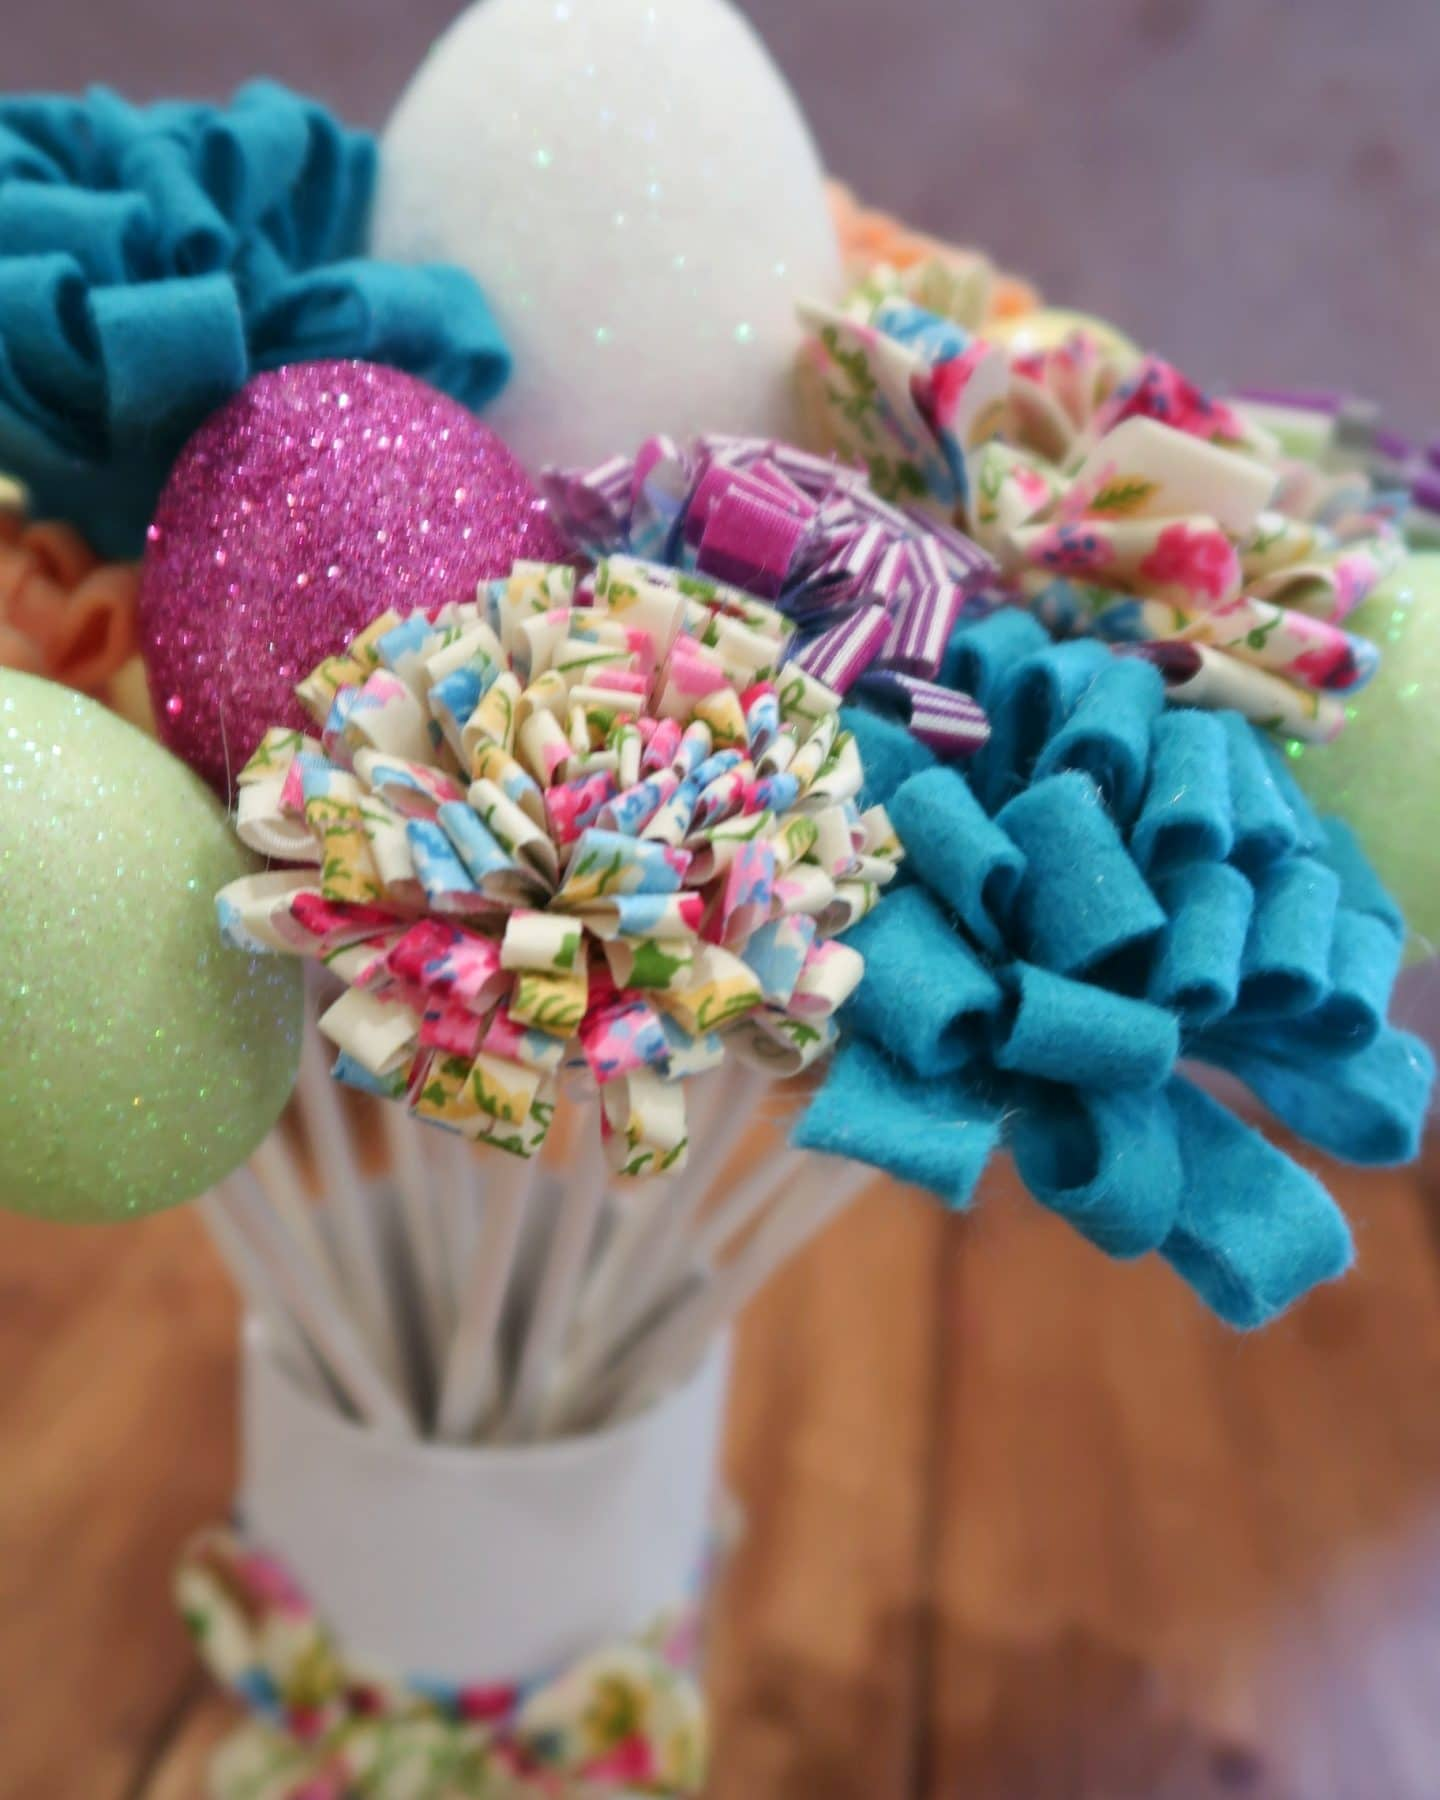 Easter decoration with fabric flowers and glittery eggs